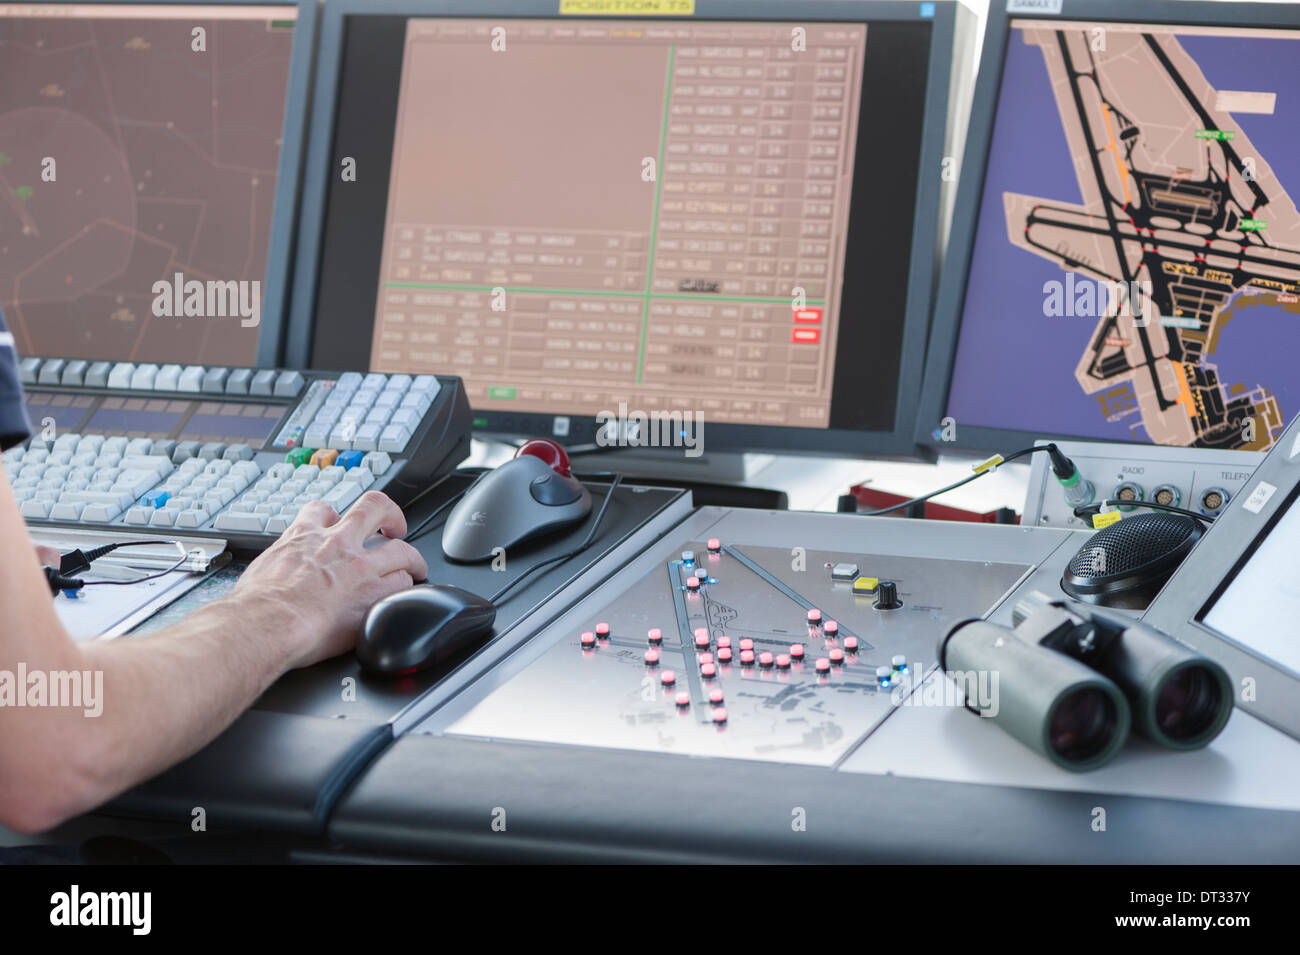 Control screens in the control tower of Zurich international airport show the airport's three runways and ground traffic. - Stock Image